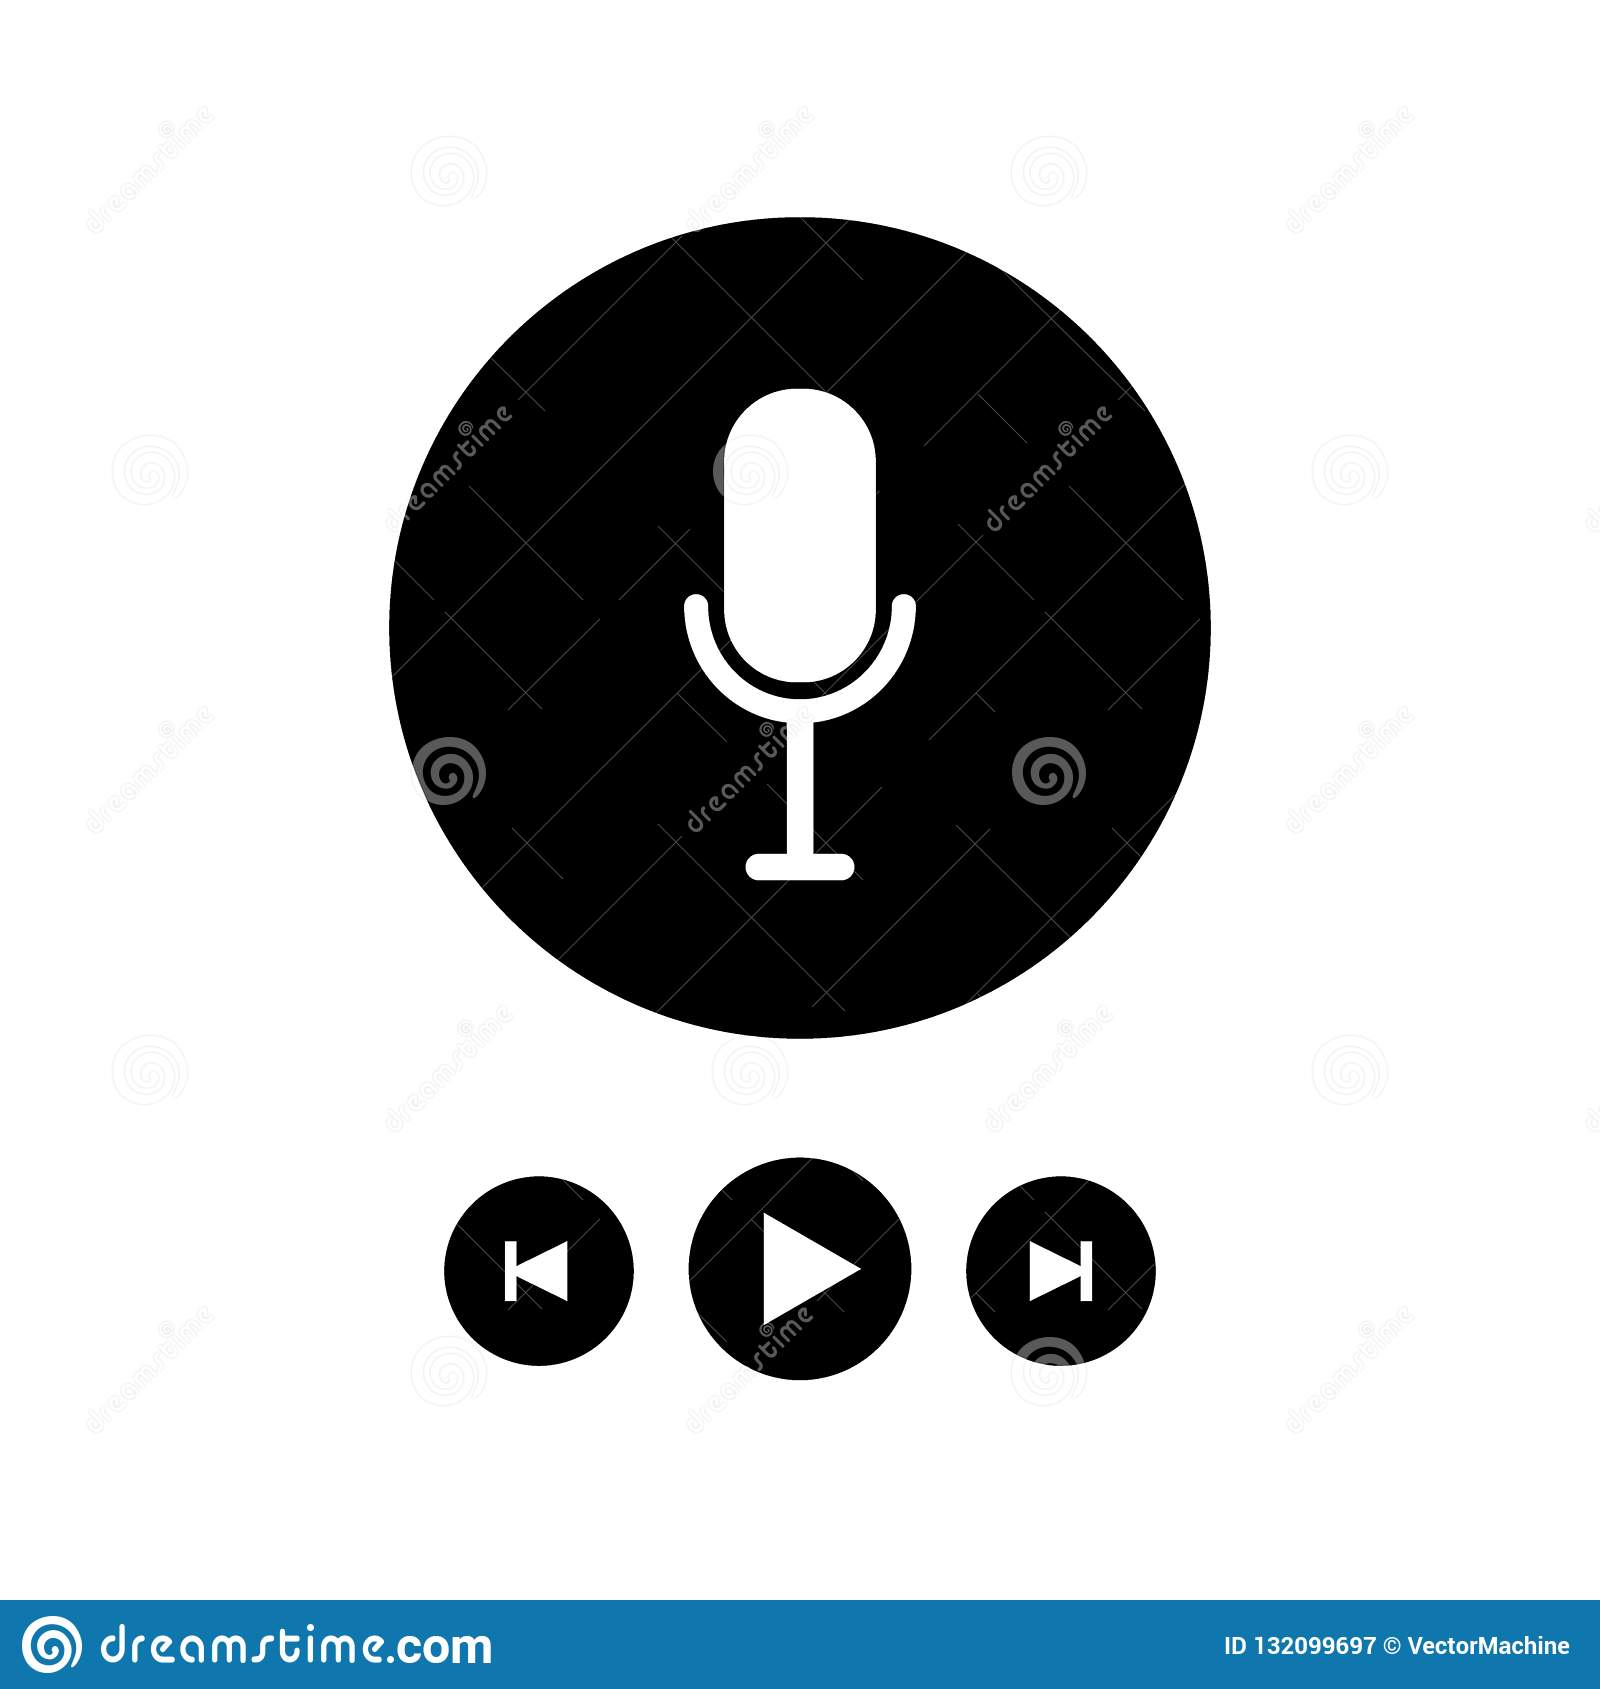 Podcast radio icon illustration set. Studio table microphone with broadcast text on air. Webcast audio record concept logo